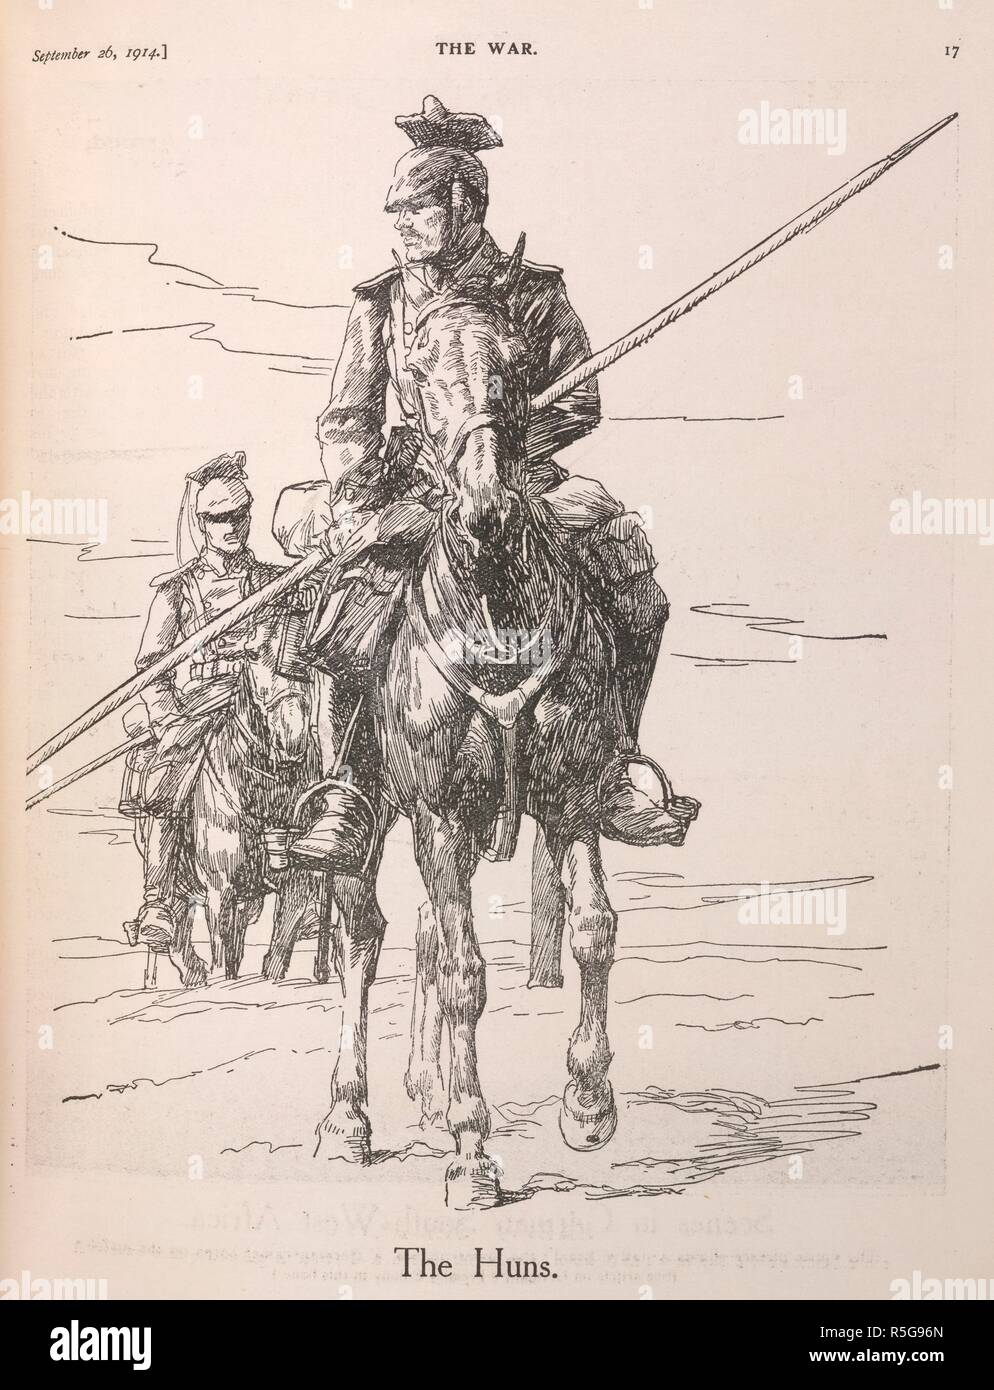 'The Huns'. An illustration showing two German lancers (Uhlans), during the First World War. The War, Nelson's picture weekly. London, 1914. Source: The War, Nelson's picture weekly. 26.09.1914. page 17. - Stock Image